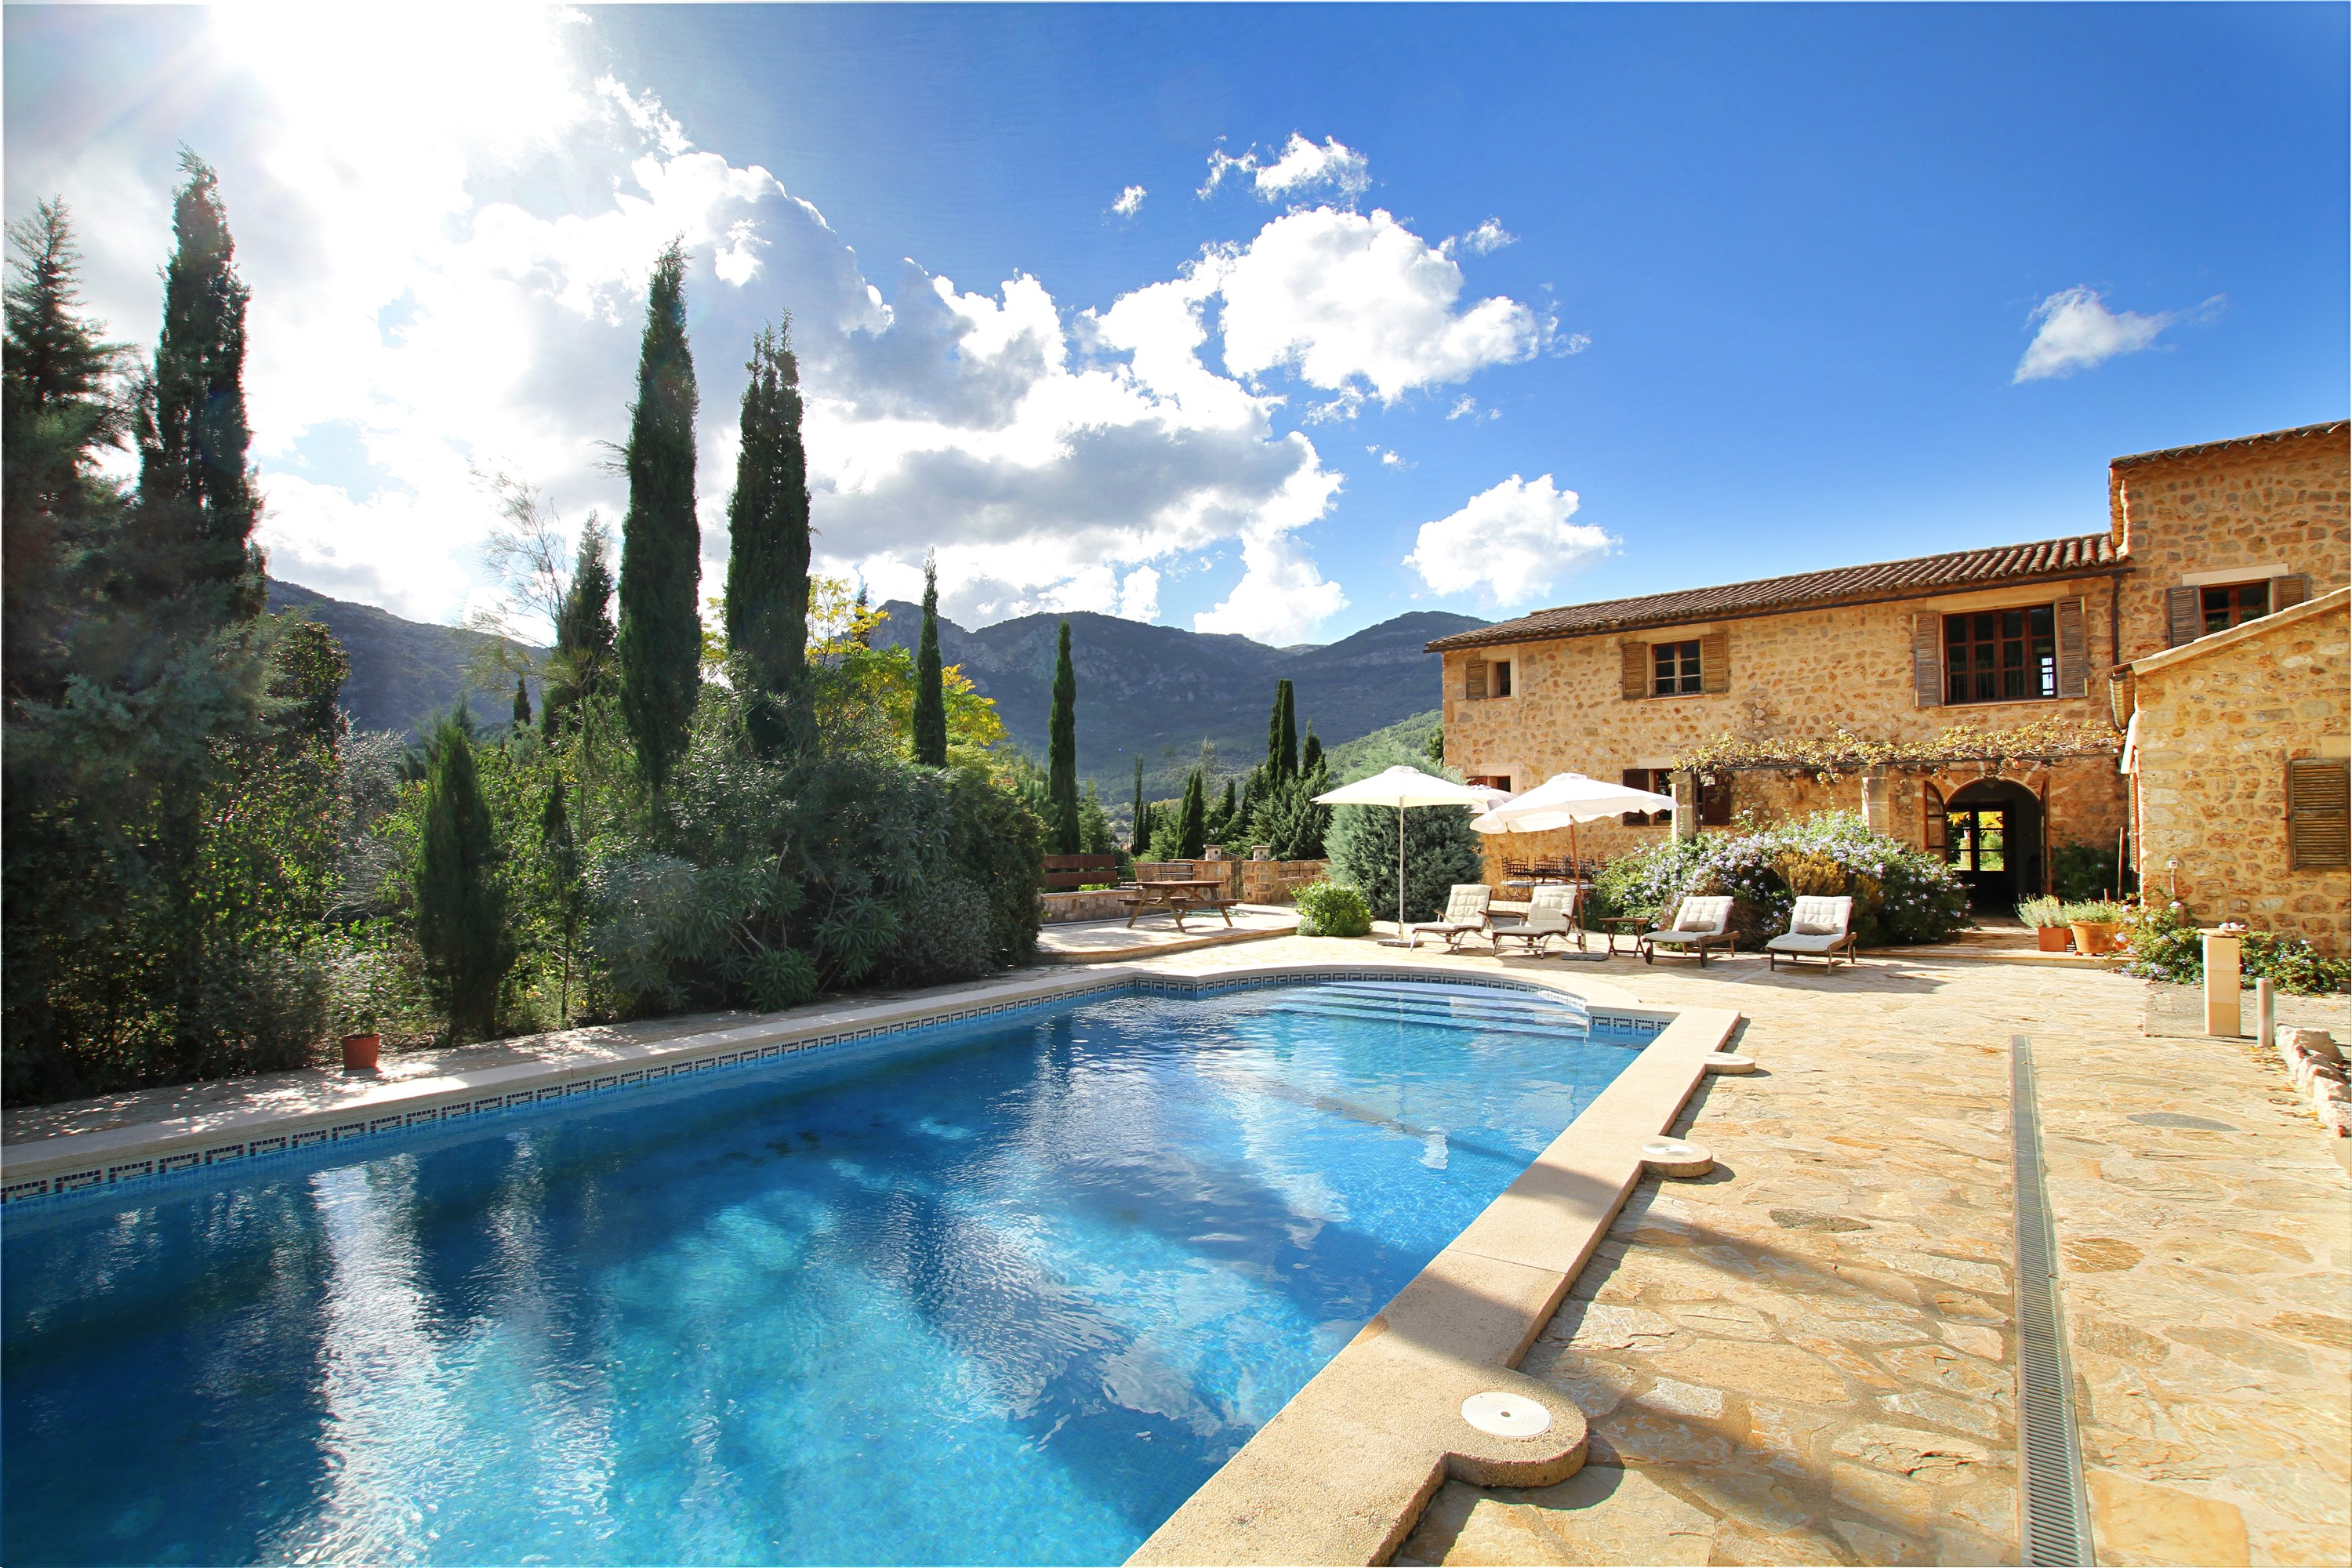 Holiday villa and apartment rentals in Soller Mallorca